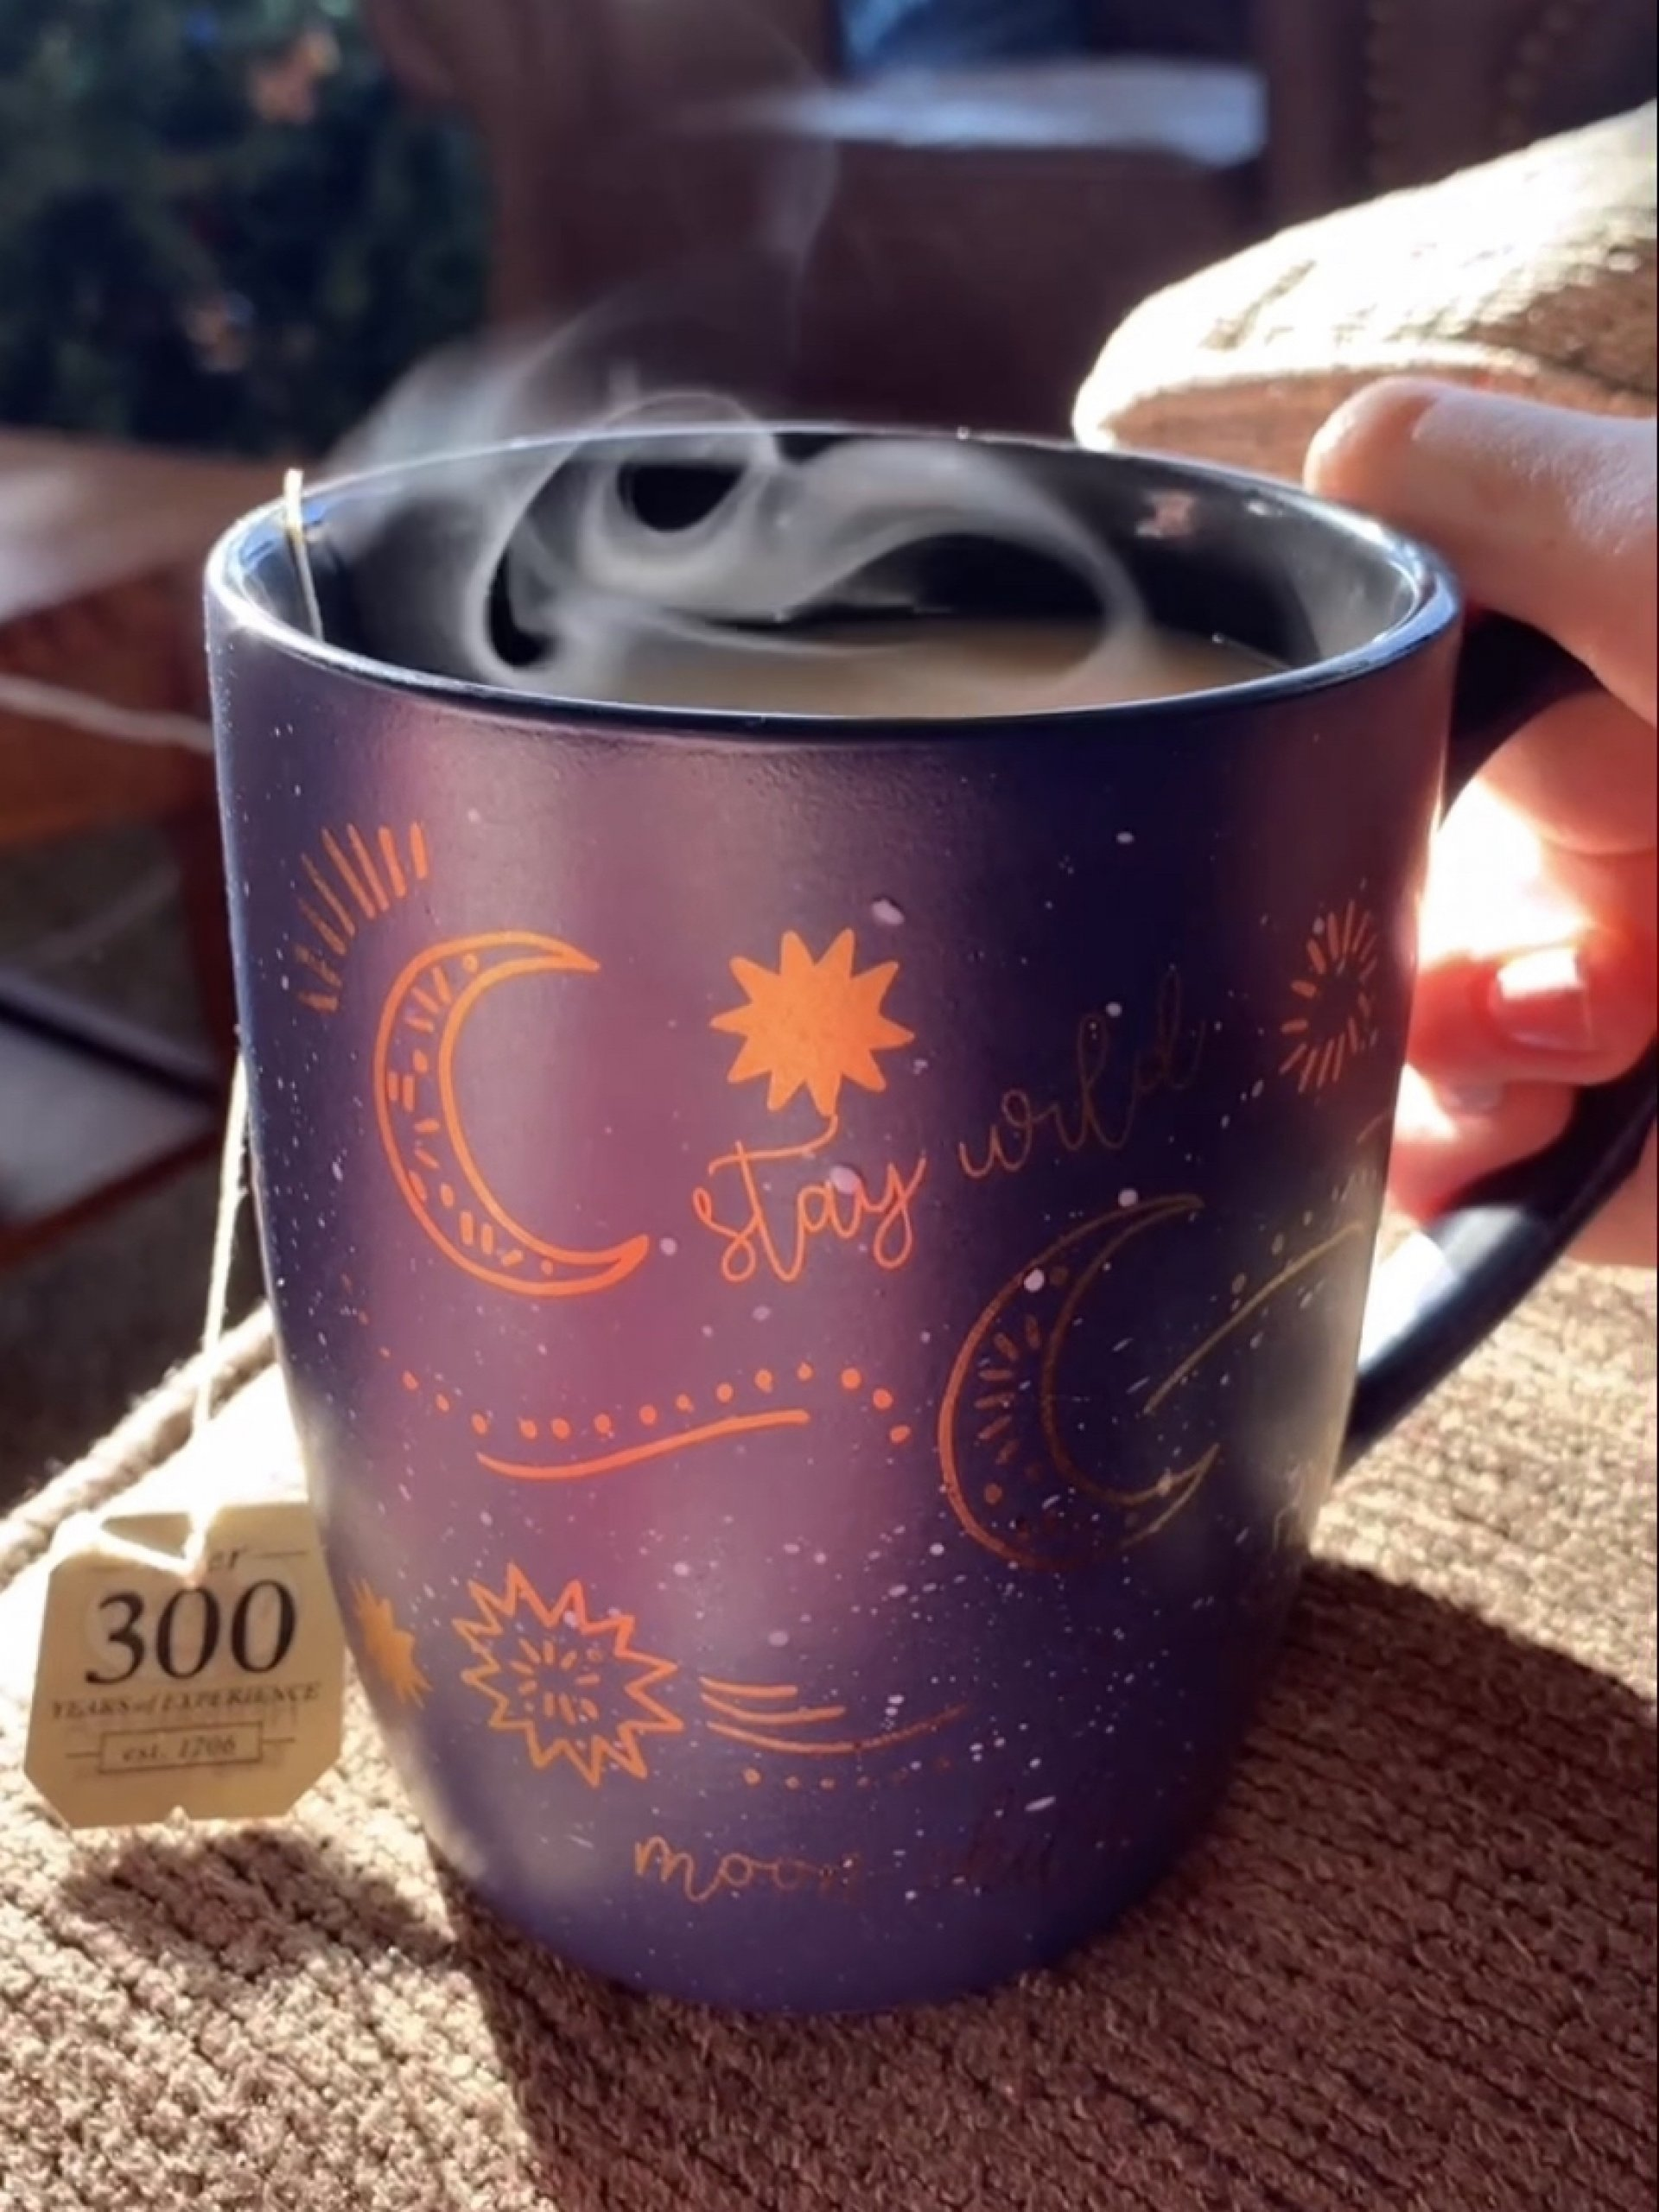 A warm cup of tea on a winter's day on Dec. 24, 2020 | Photo by  Elise Fero